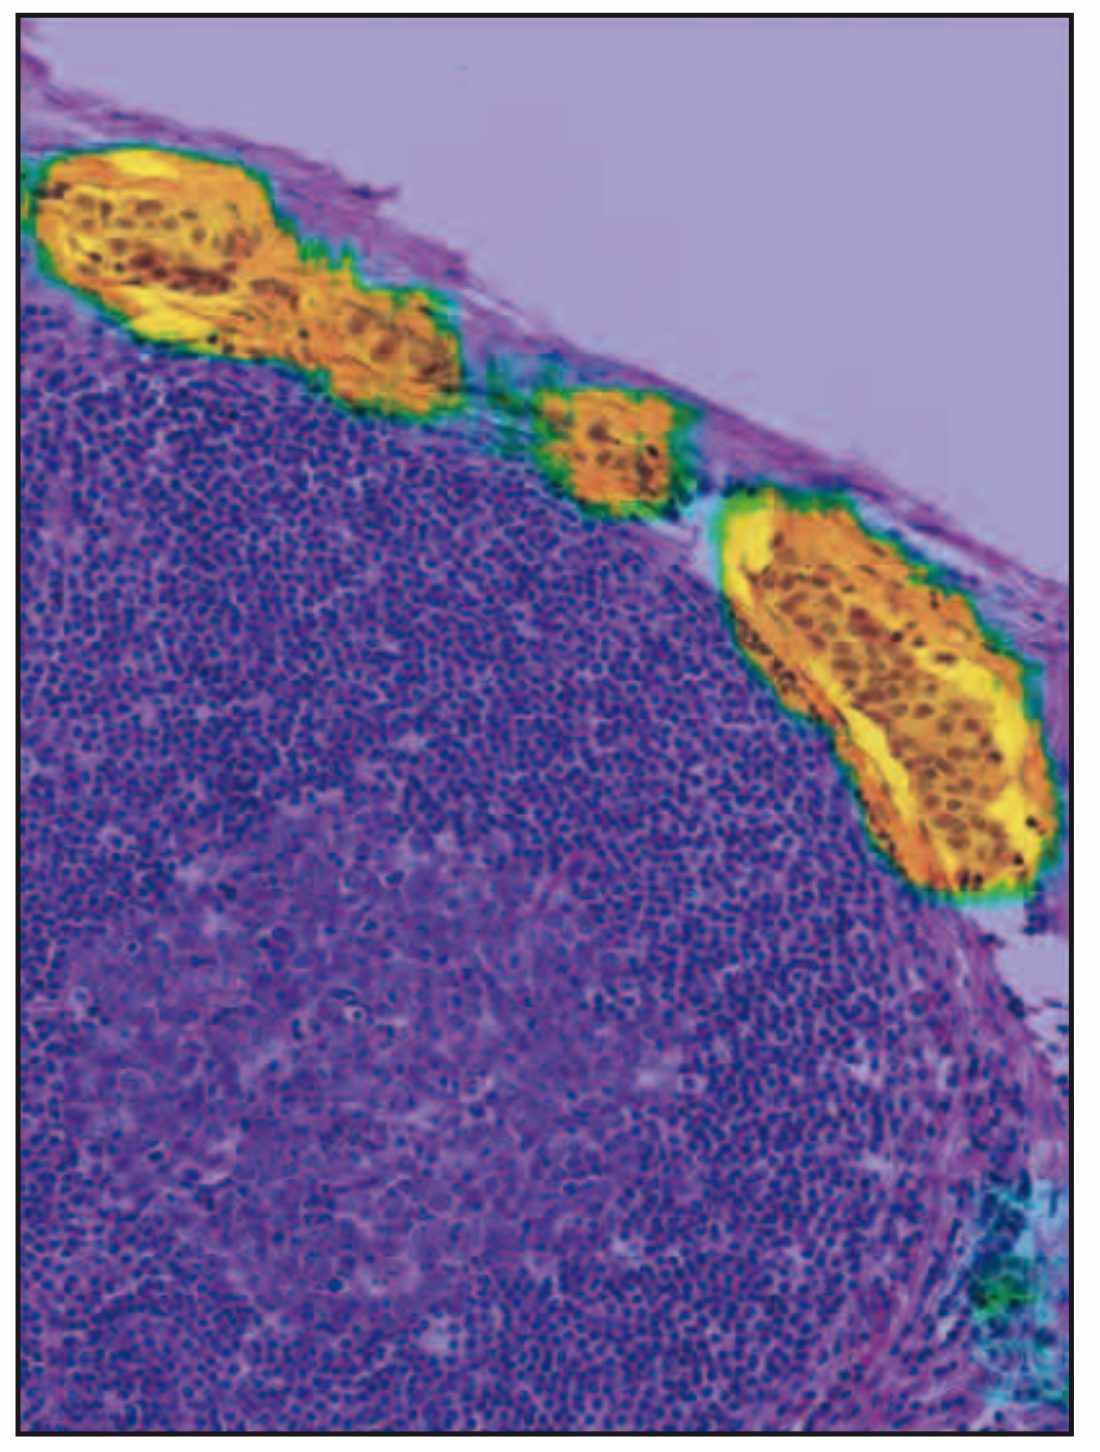 AI-driven highlighting of areas highly suspicious for metastatic cancer.